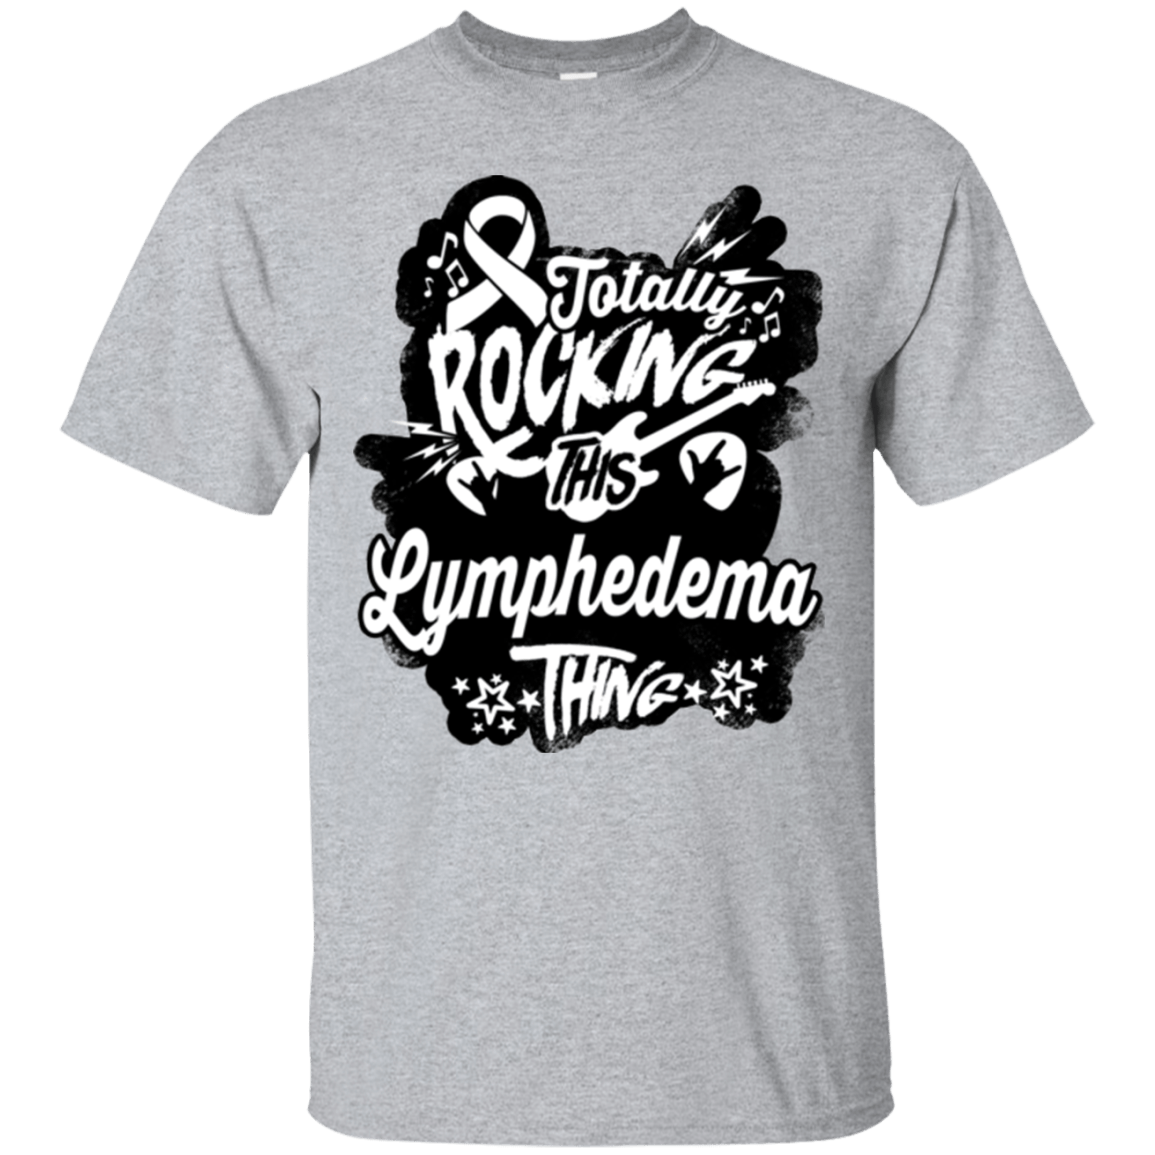 Rocking Lymphedema Unisex Shirt - The Unchargeables